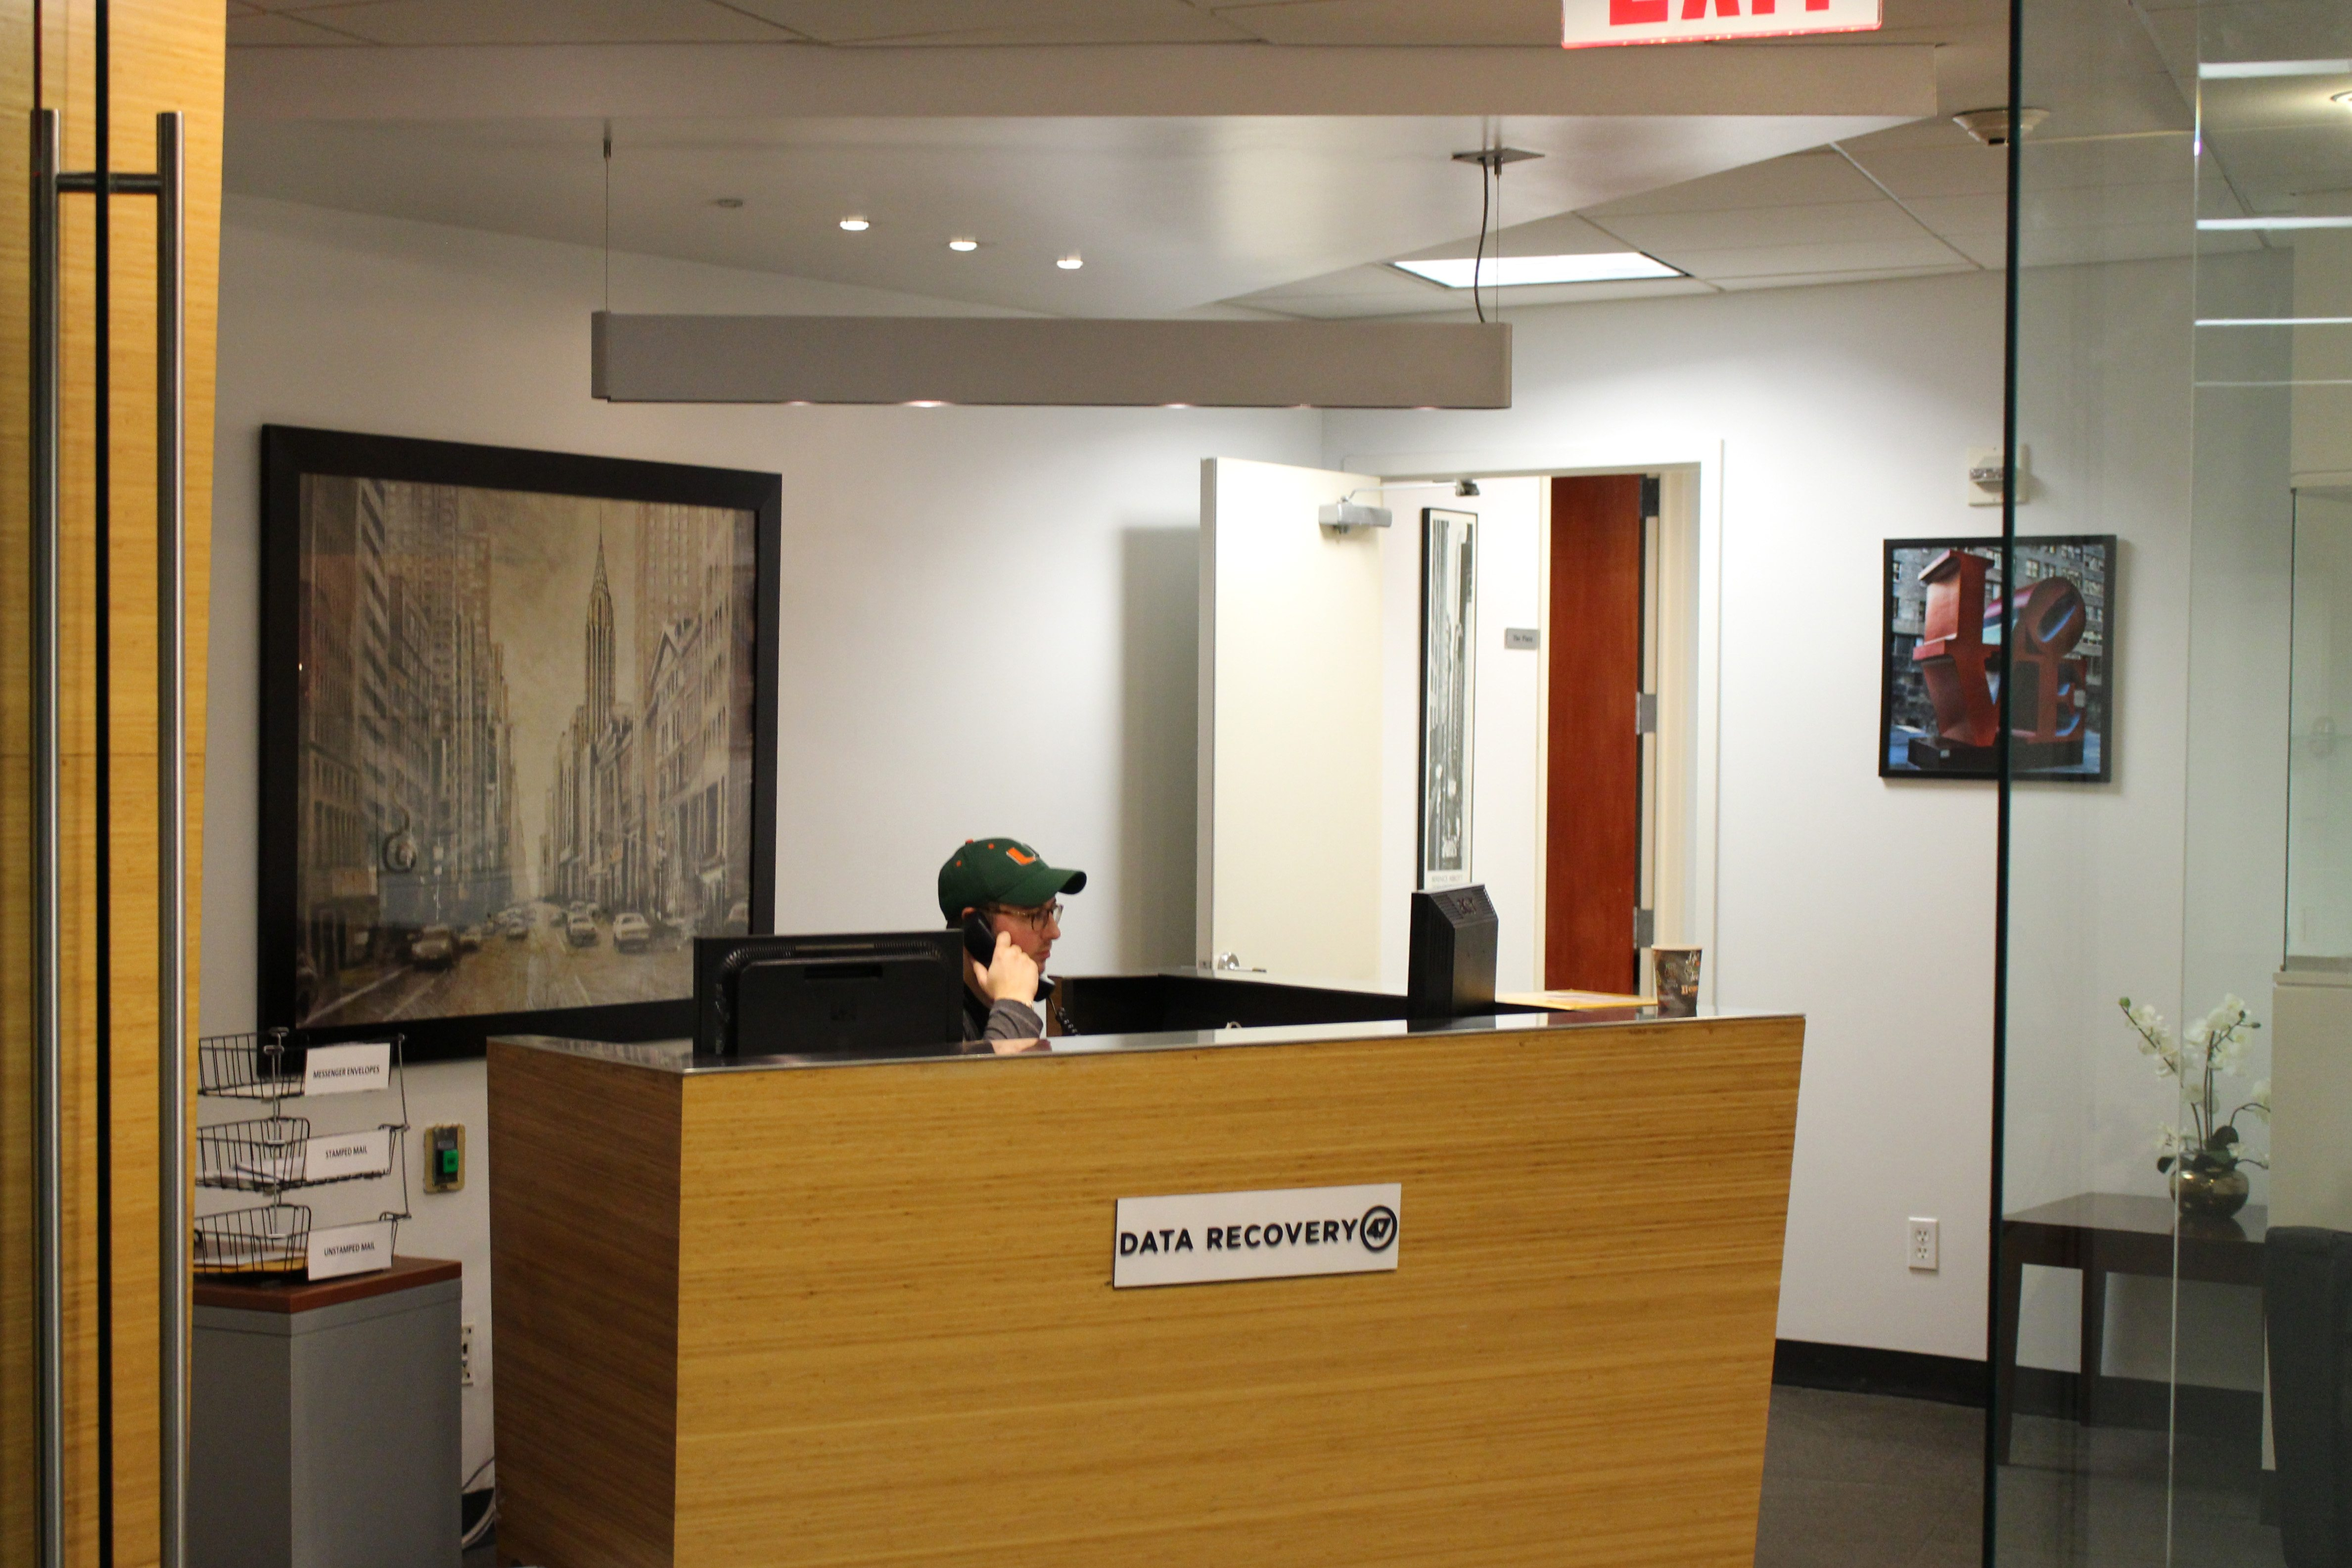 Front Desk of Data Recovery 47 in New York City  About us office